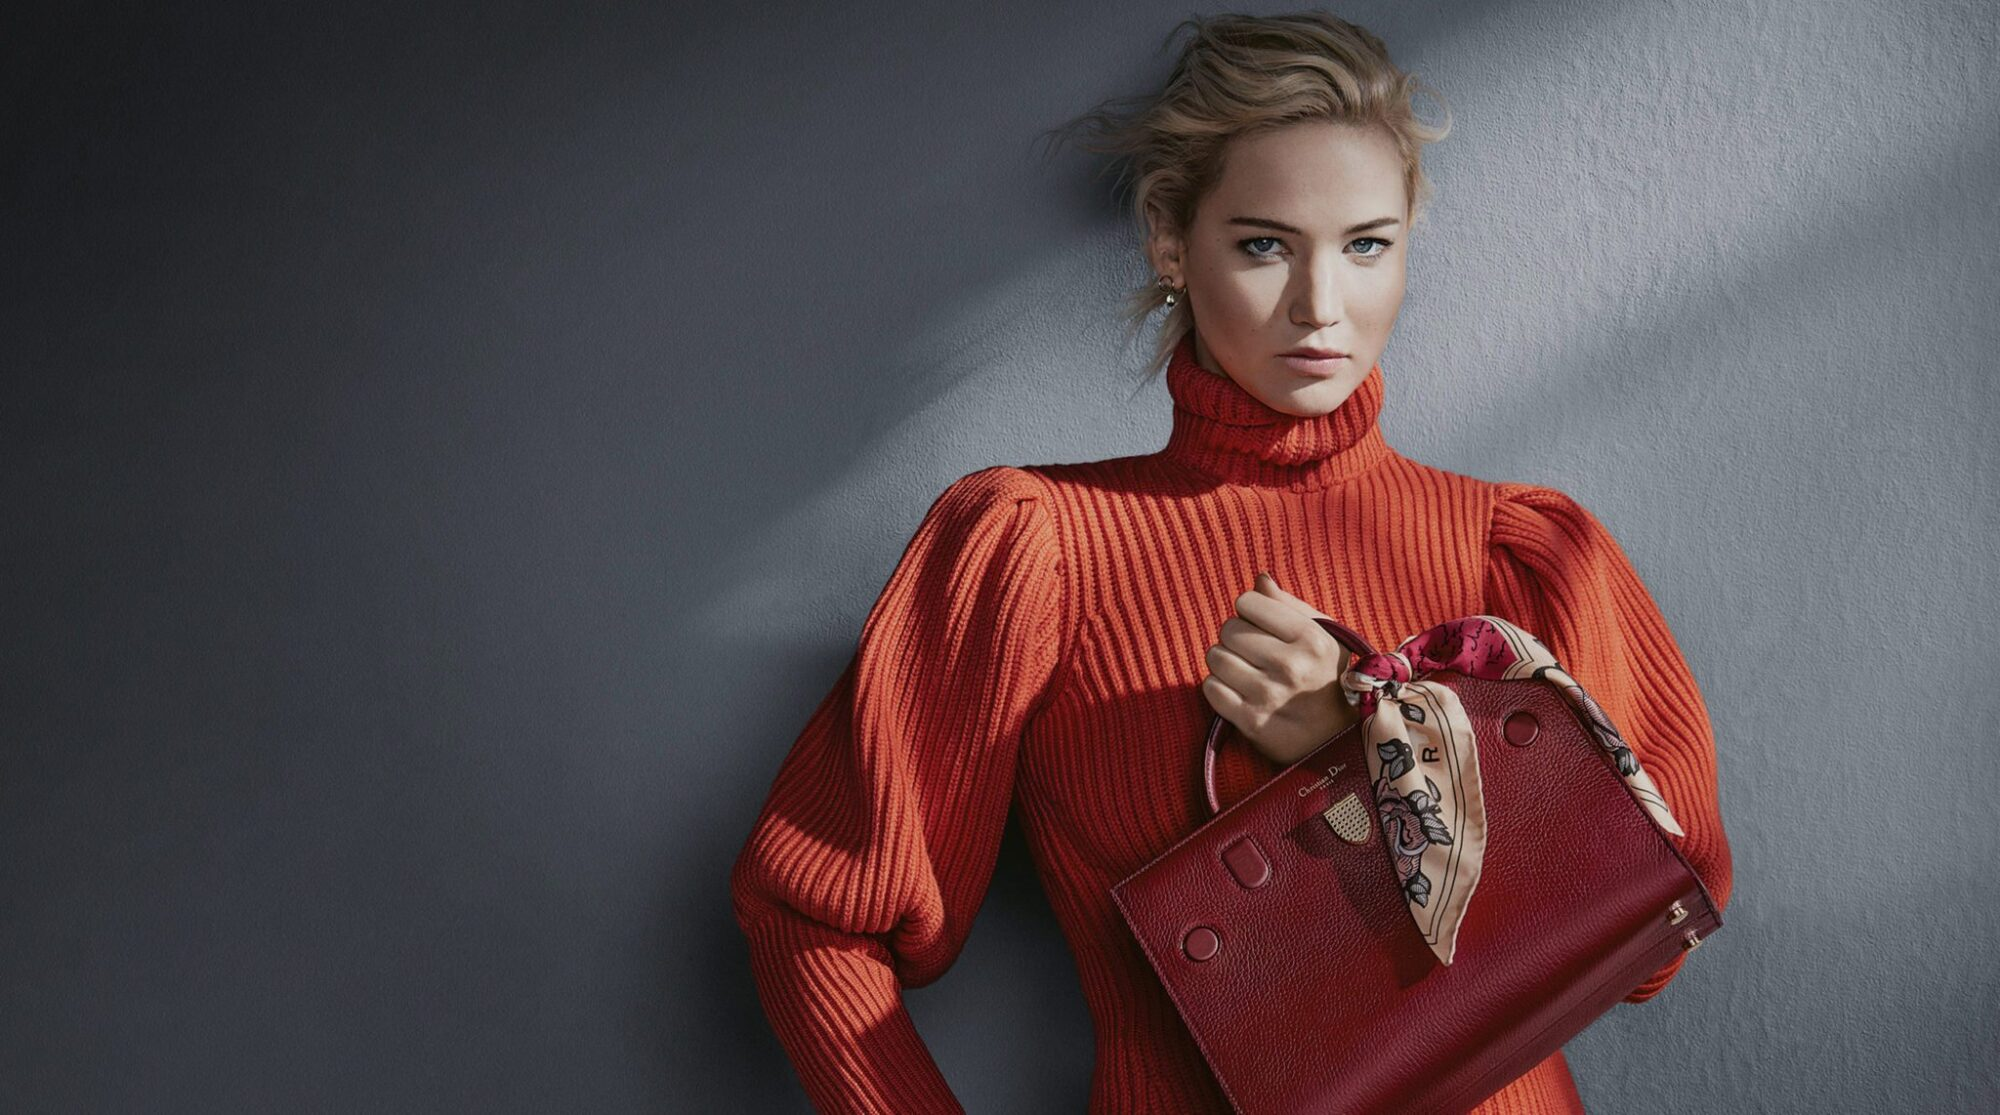 21f4a87adee6 CHRISTIAN DIOR FALL 2016 ACCESSORIES AD CAMPAIGN FEATURING JENNIFER LAWRENCE